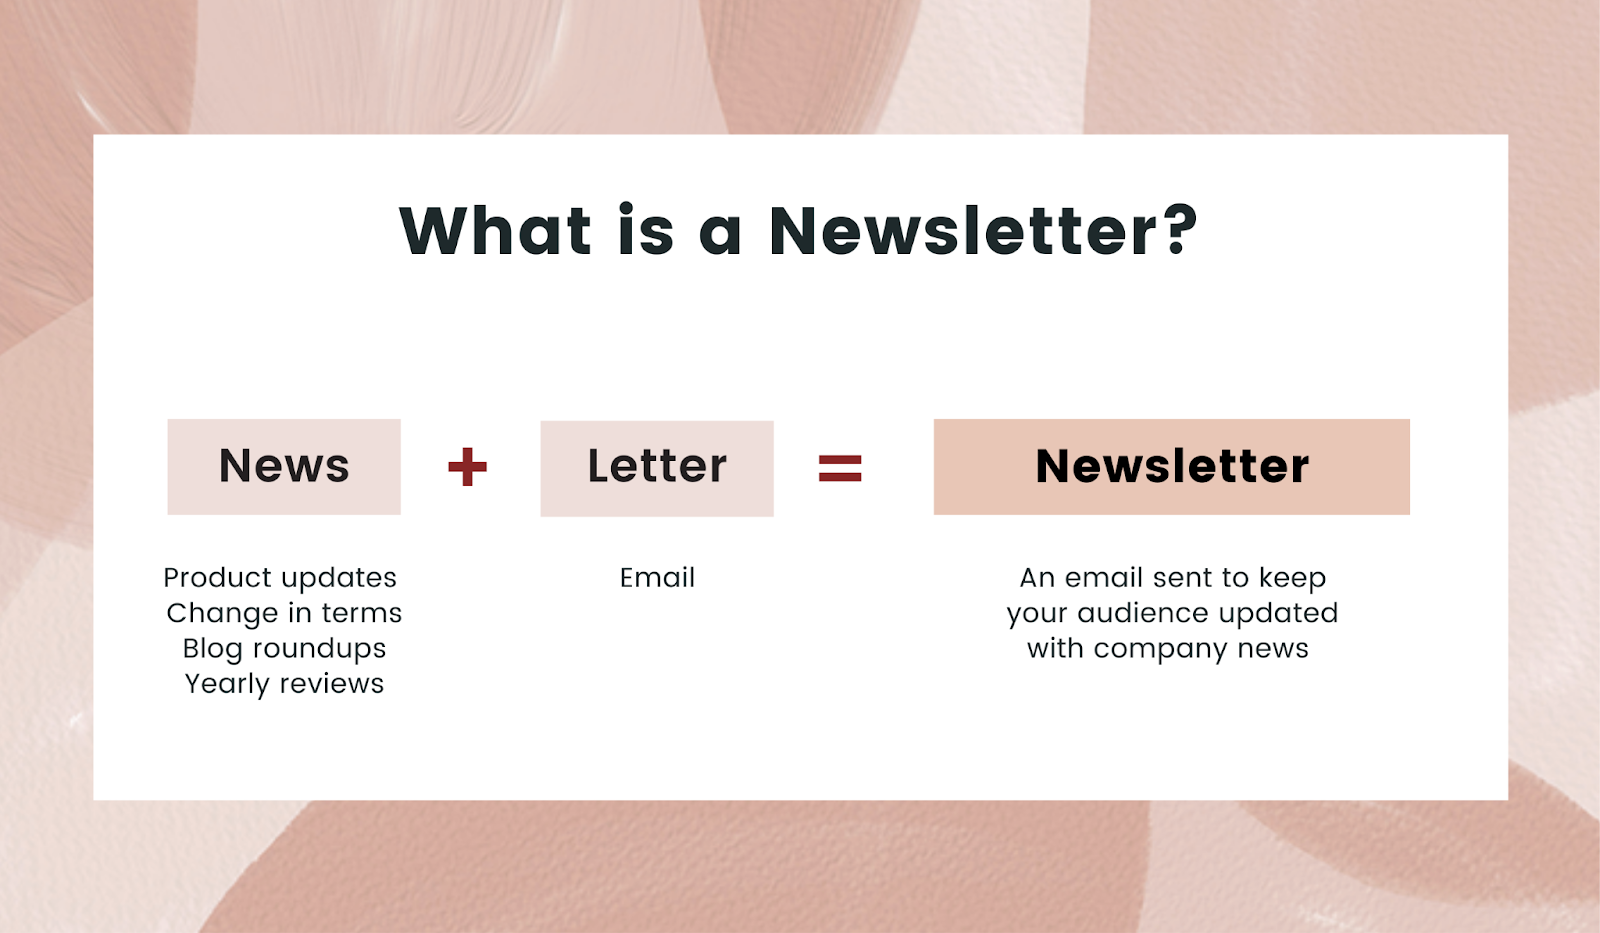 Defining what a newsletter is